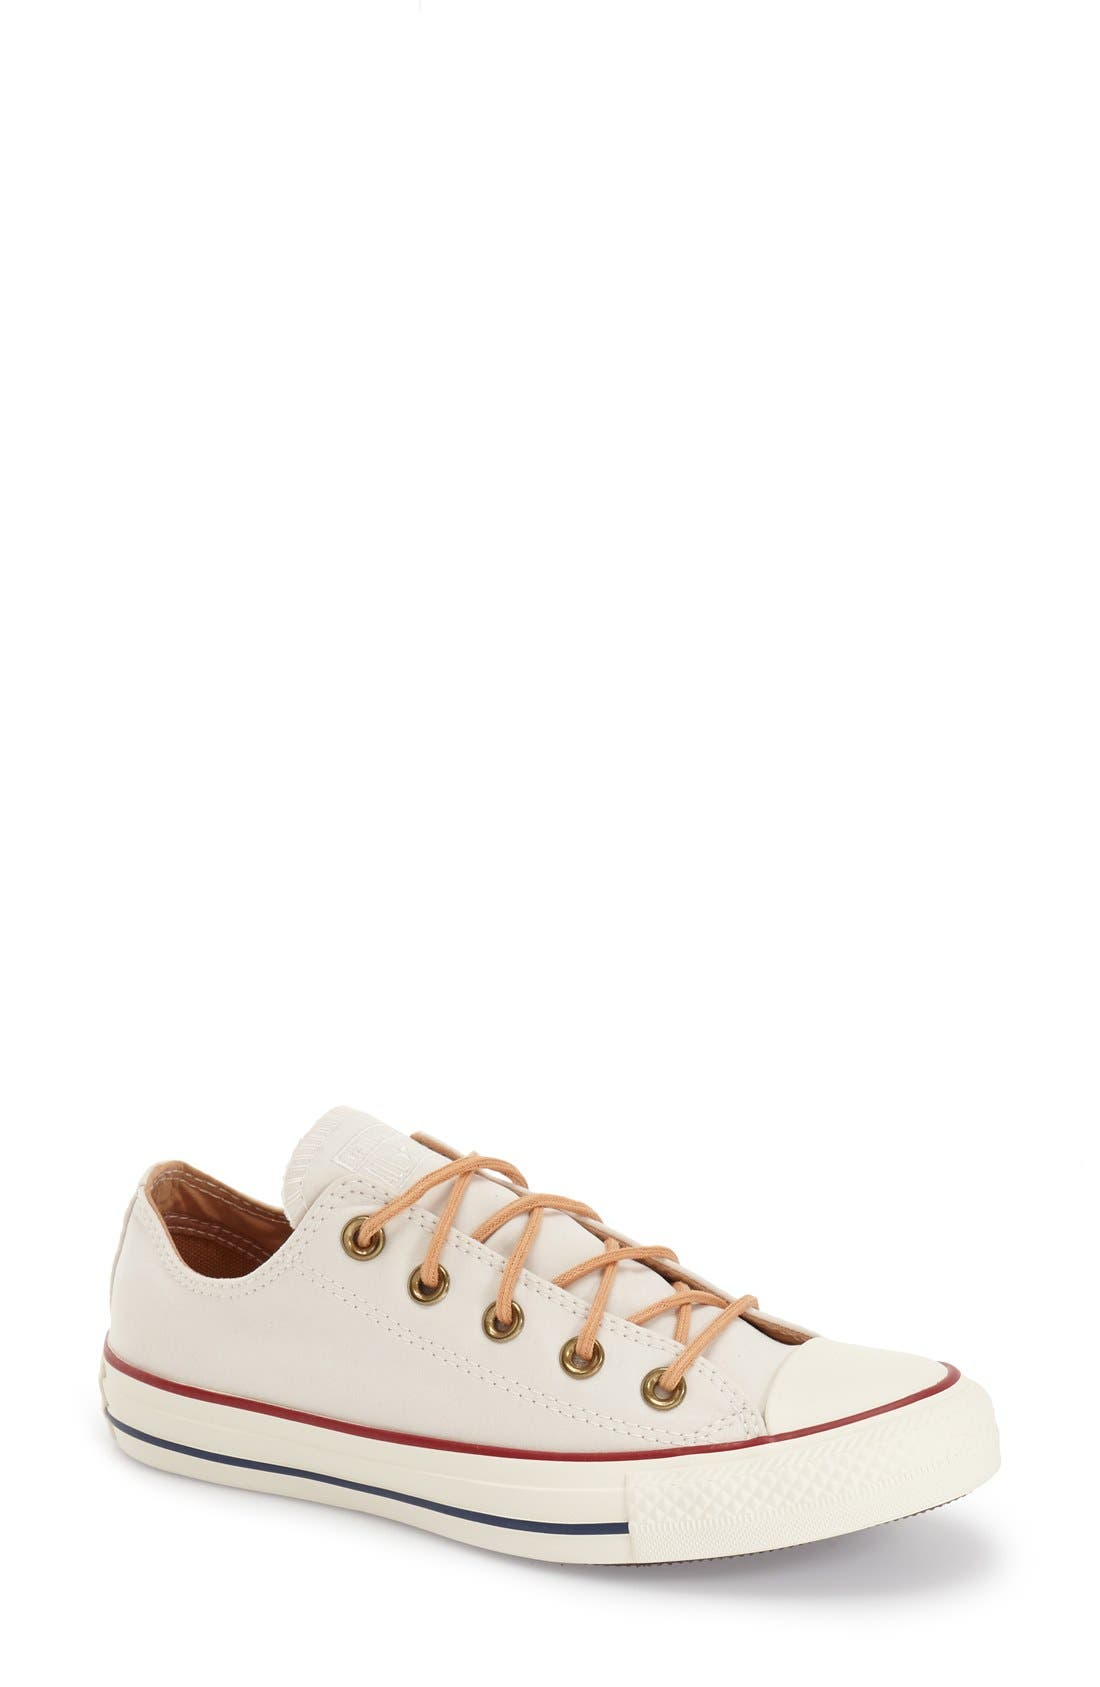 Alternate Image 1 Selected - Converse Chuck Taylor® All Star® 'Peached - Ox' Low Top Sneaker (Women)